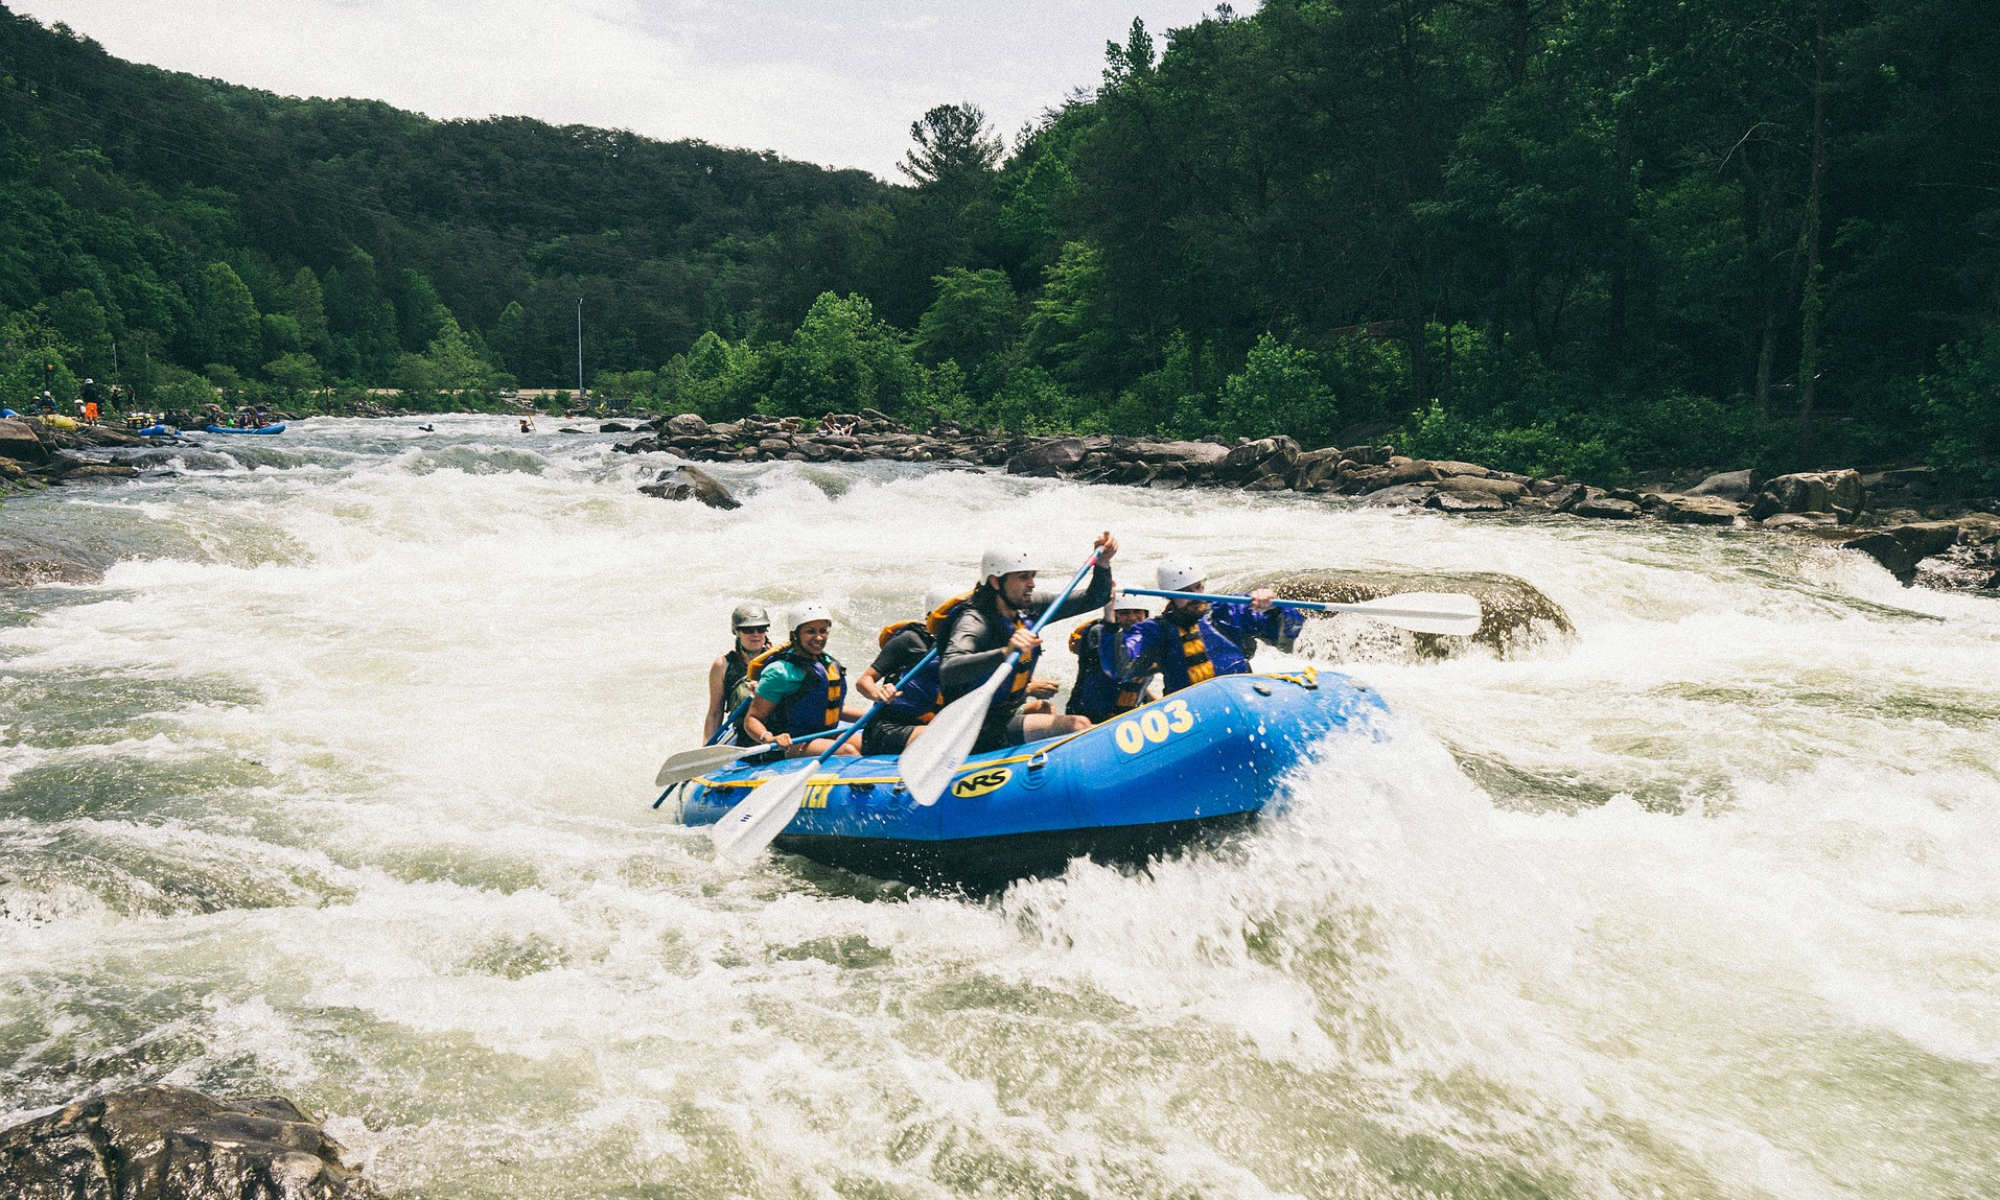 A group of people rafting on a turbulent river.